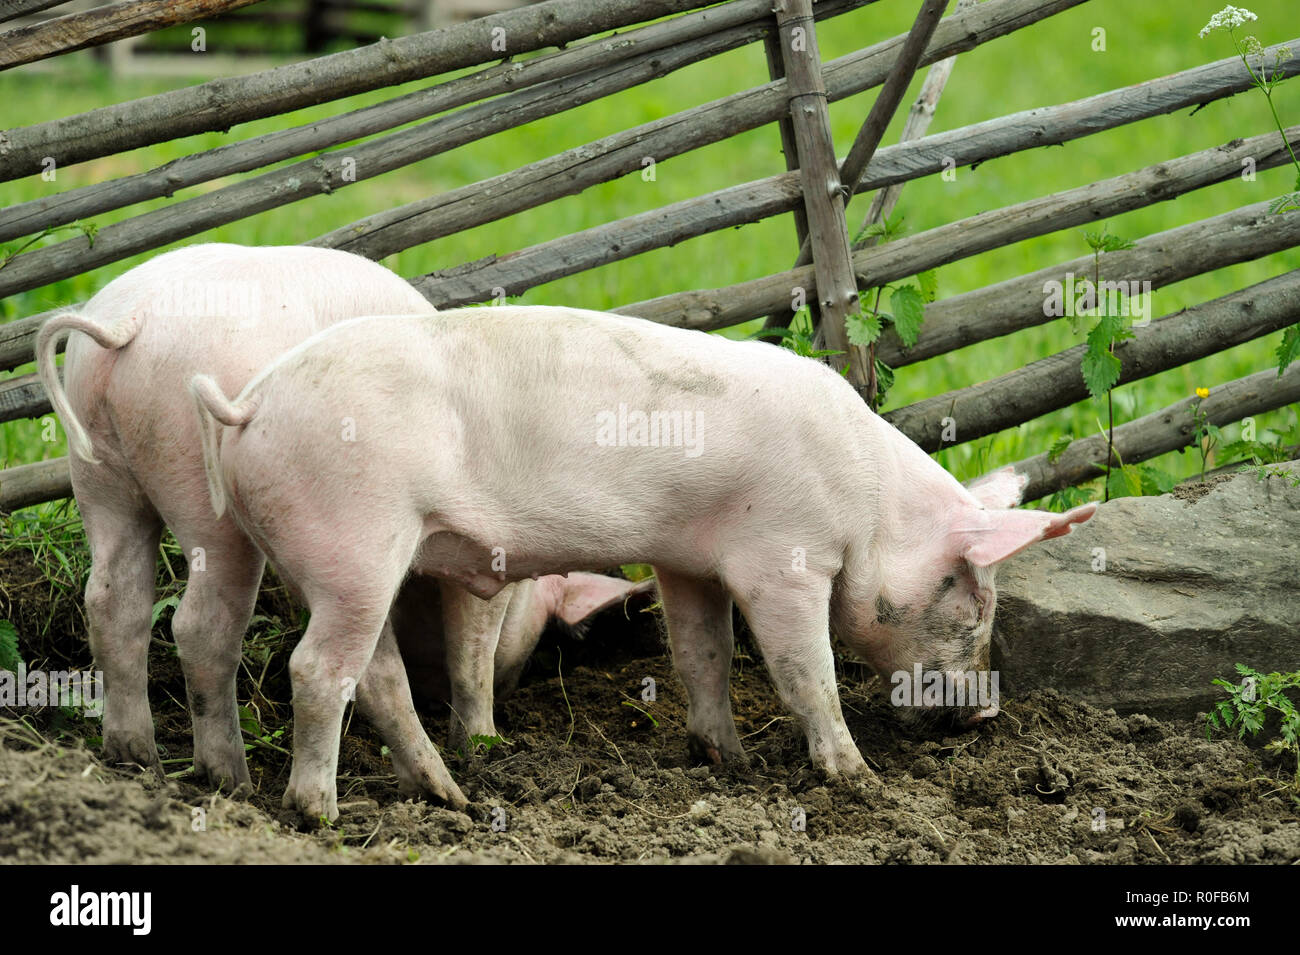 Young pigs digging soil to eat grass roots - Stock Image